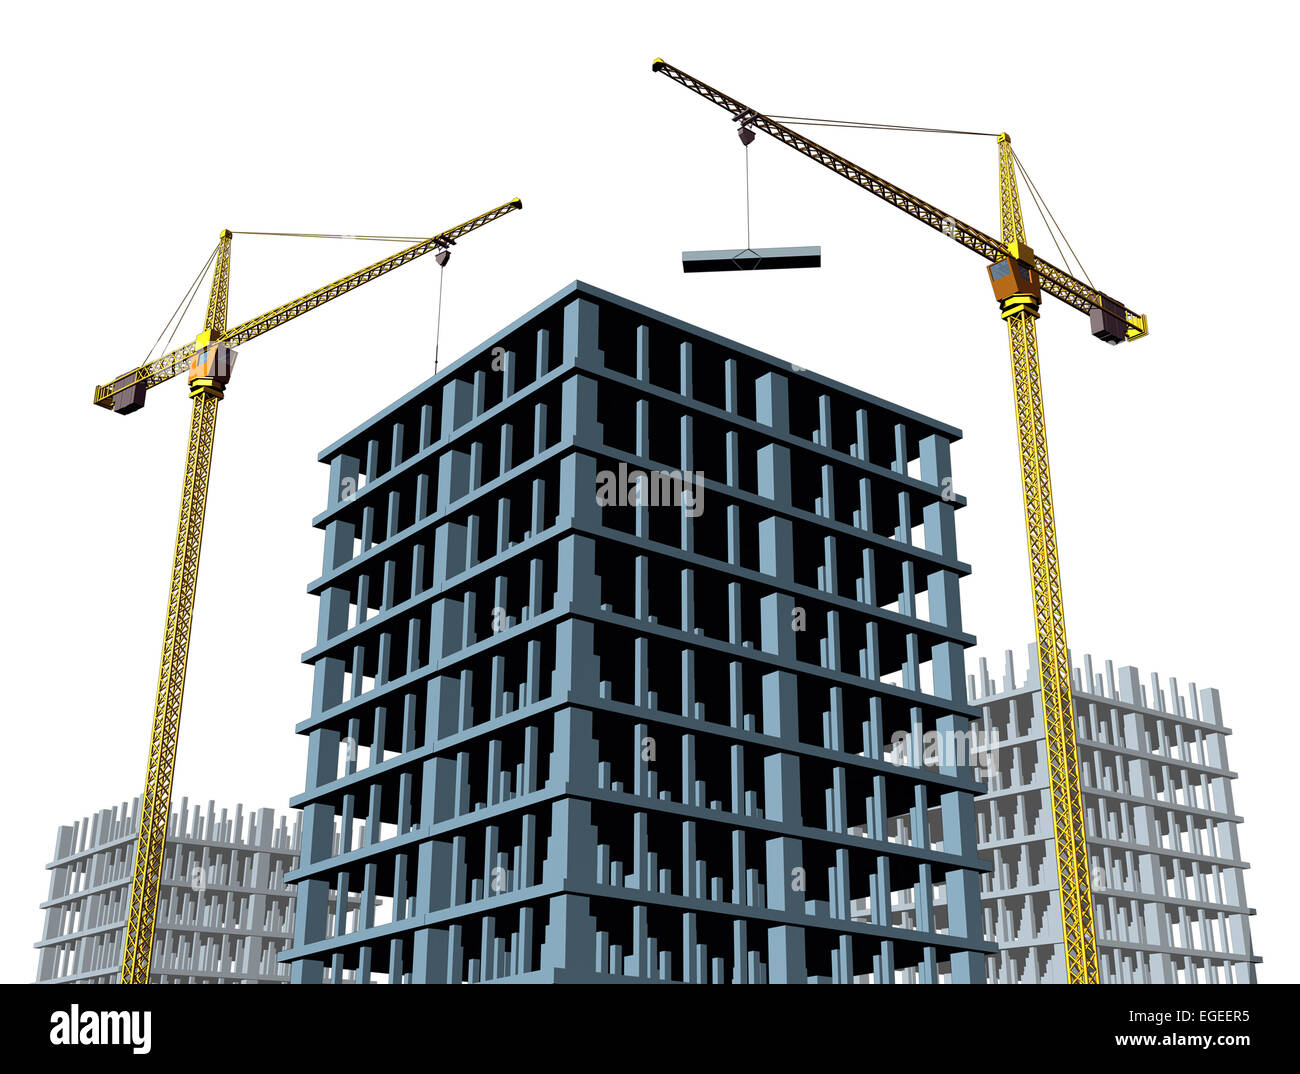 High rise contruction site with a concrete structure in for New construction building process